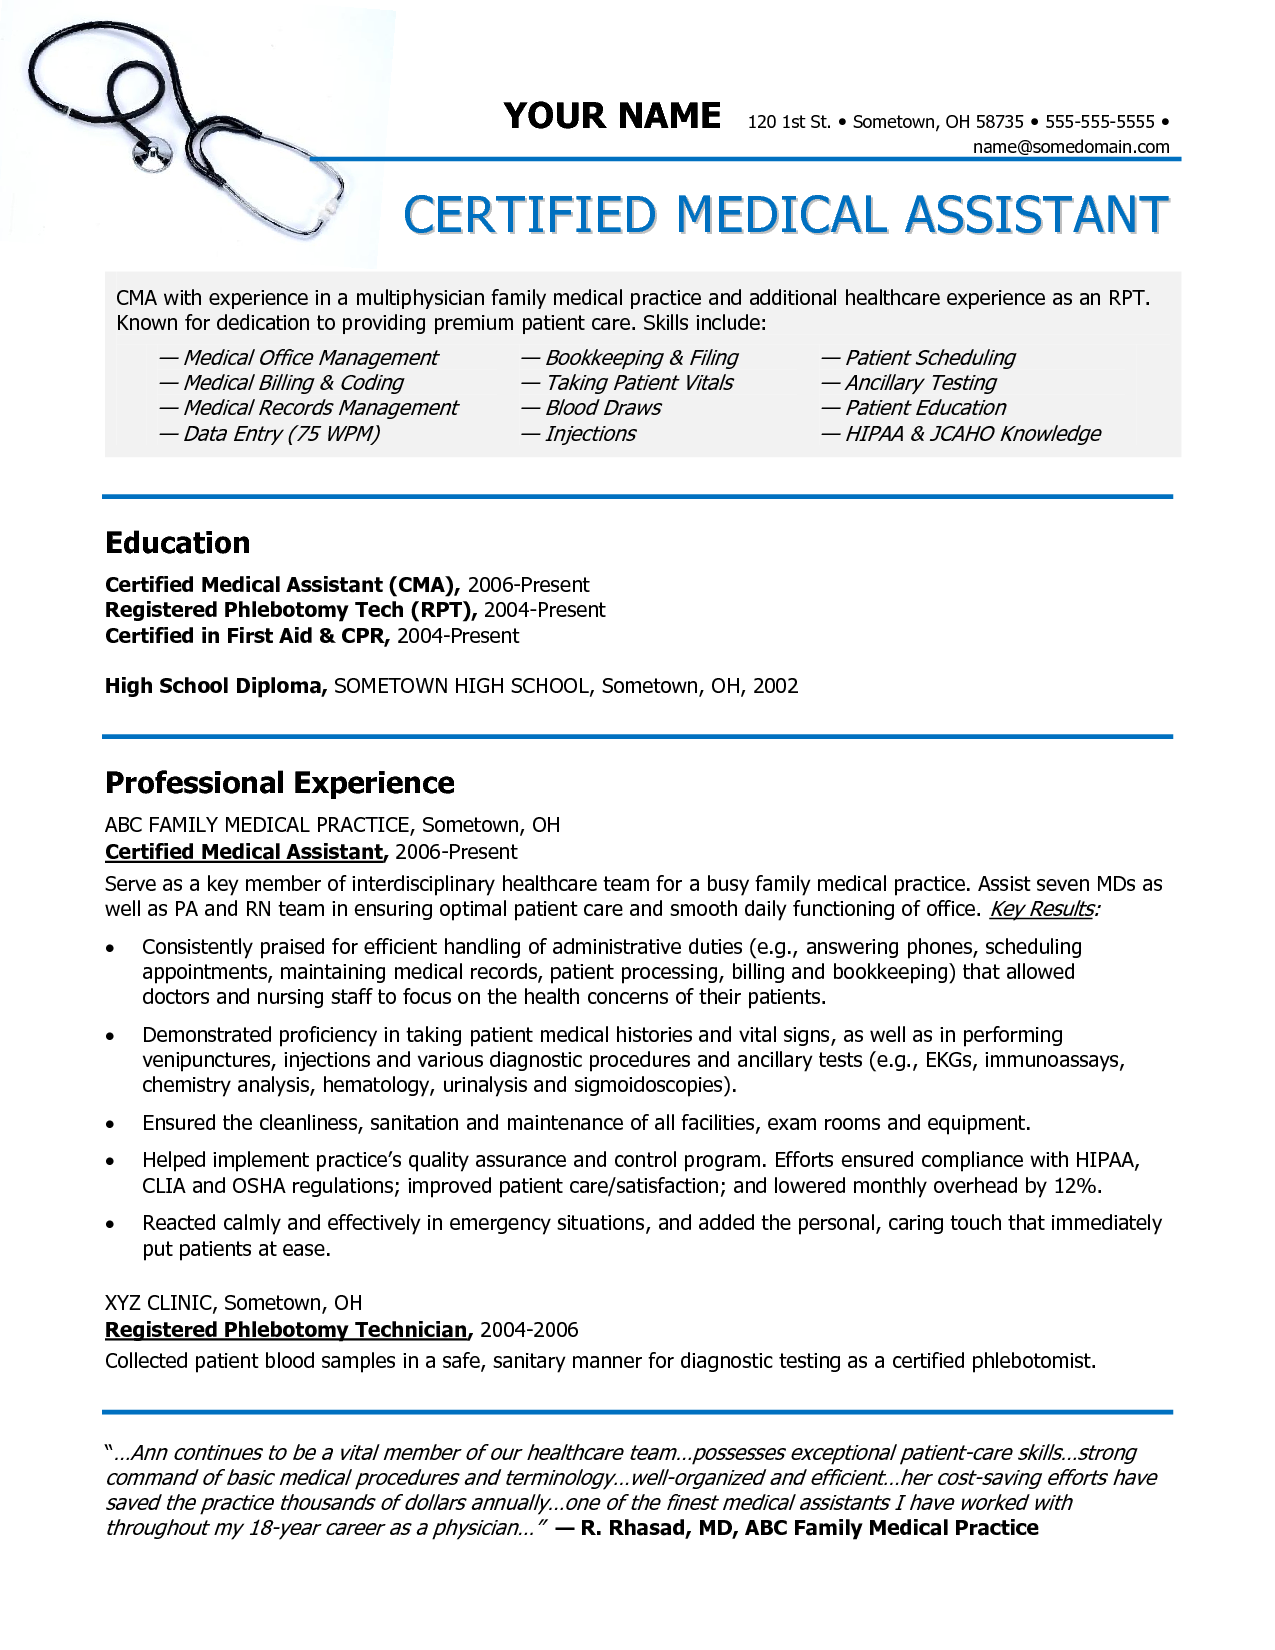 Resume Examples Medical Assistant 1 Resume Examples Sample